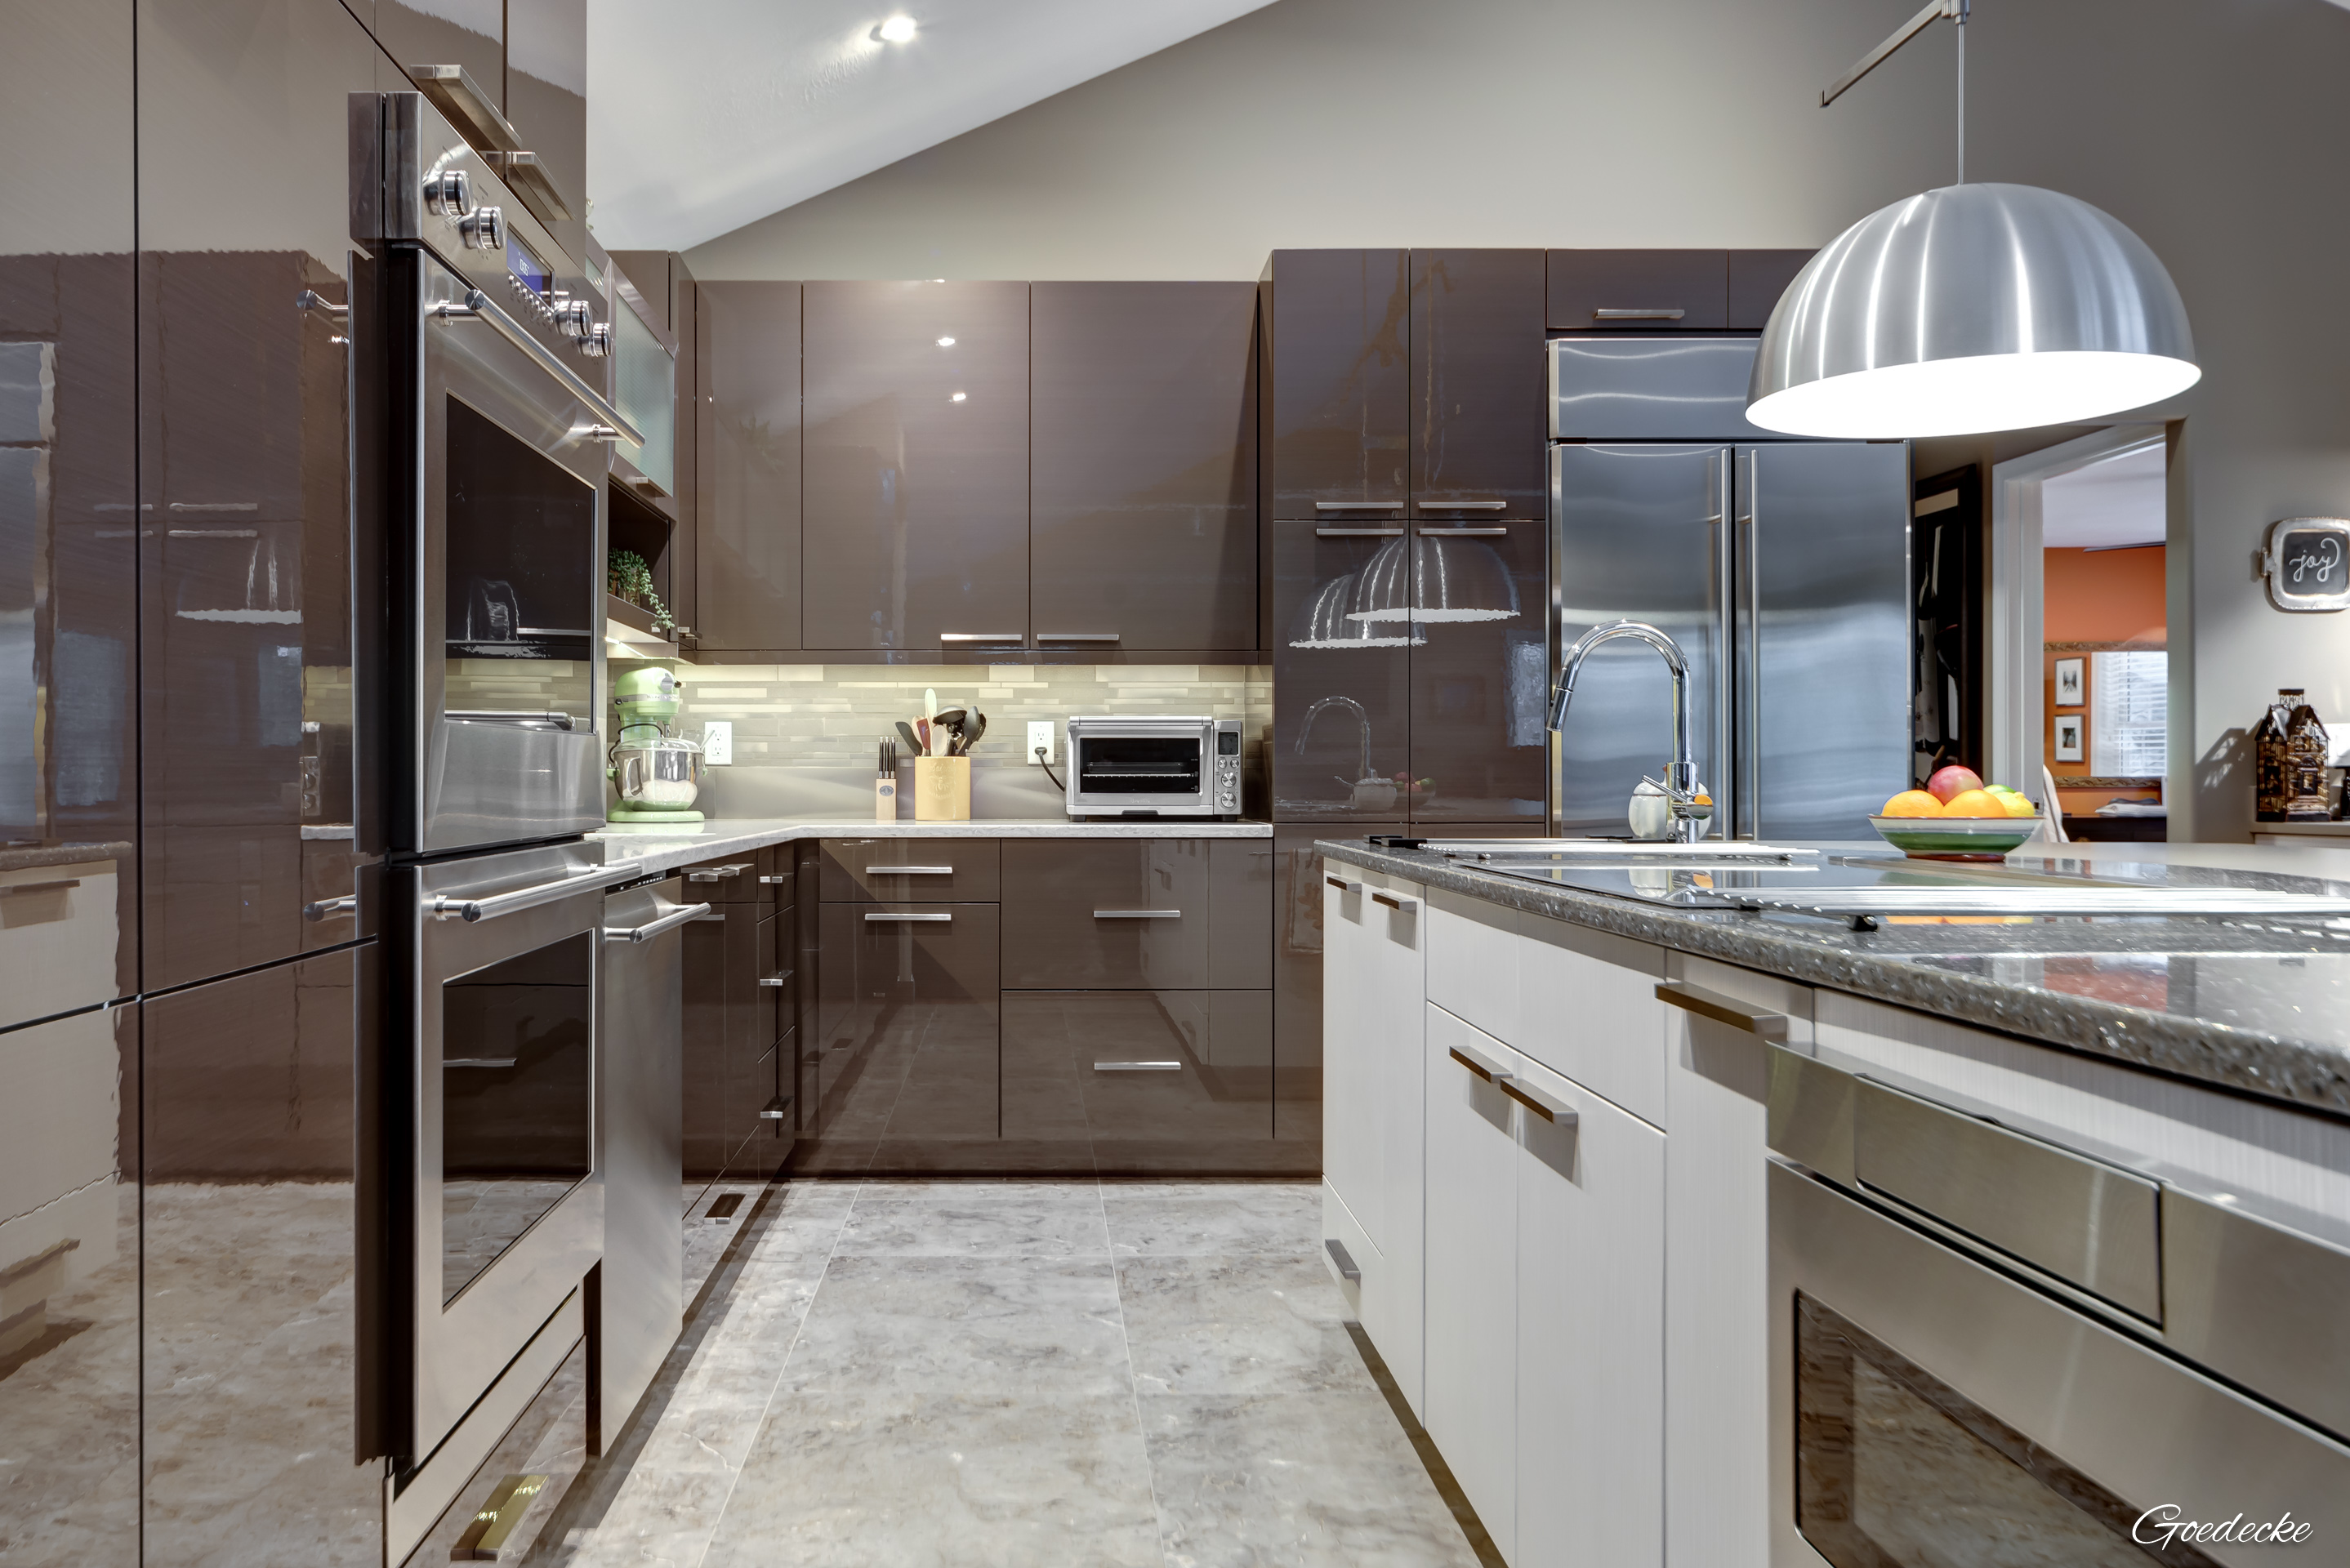 Looking for kitchen inspiration